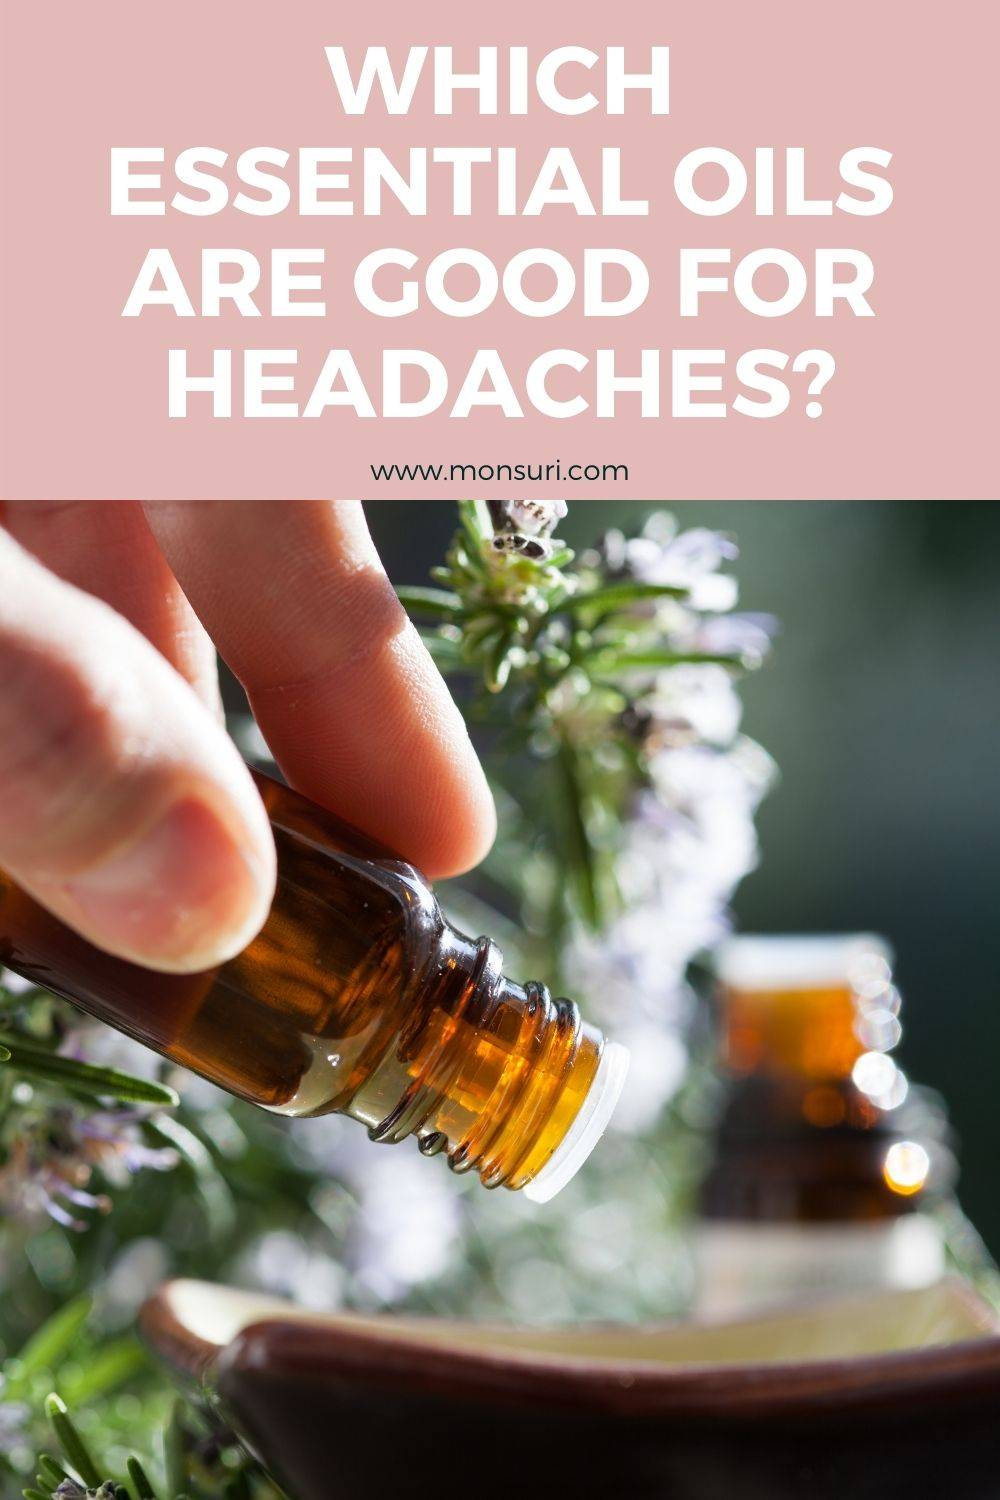 Which Essential Oils are Good for Headaches?